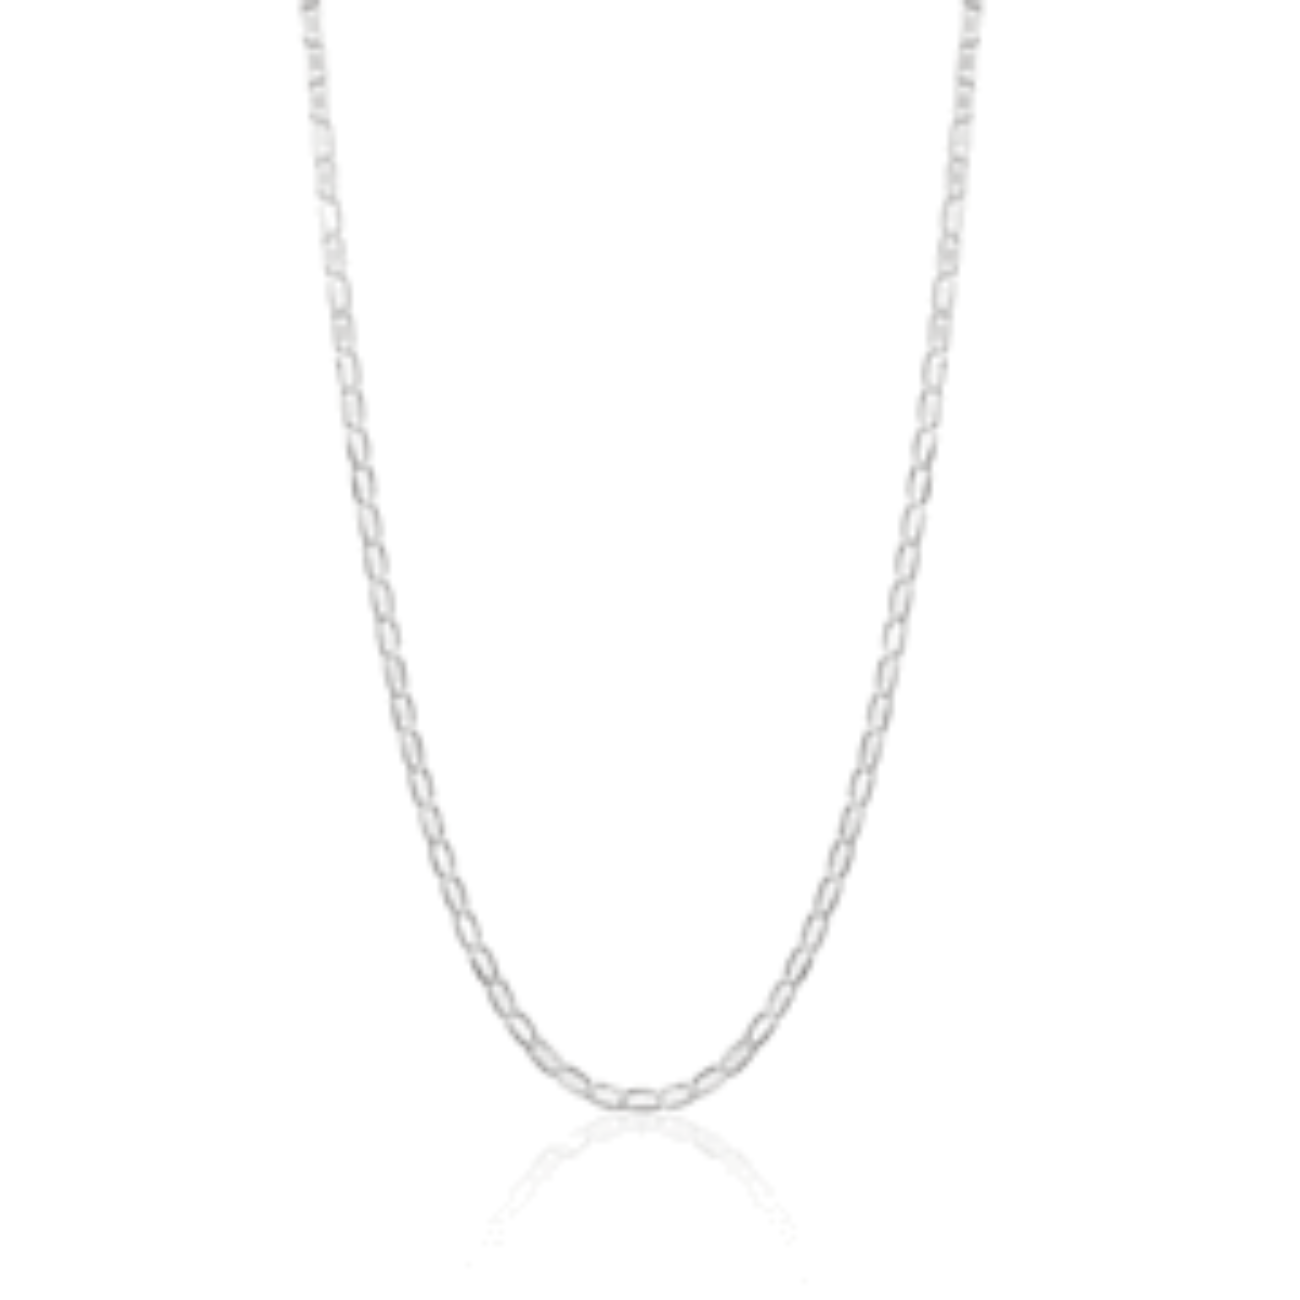 JENNY BIRD - BOBBI NECKLACE IN SILVER